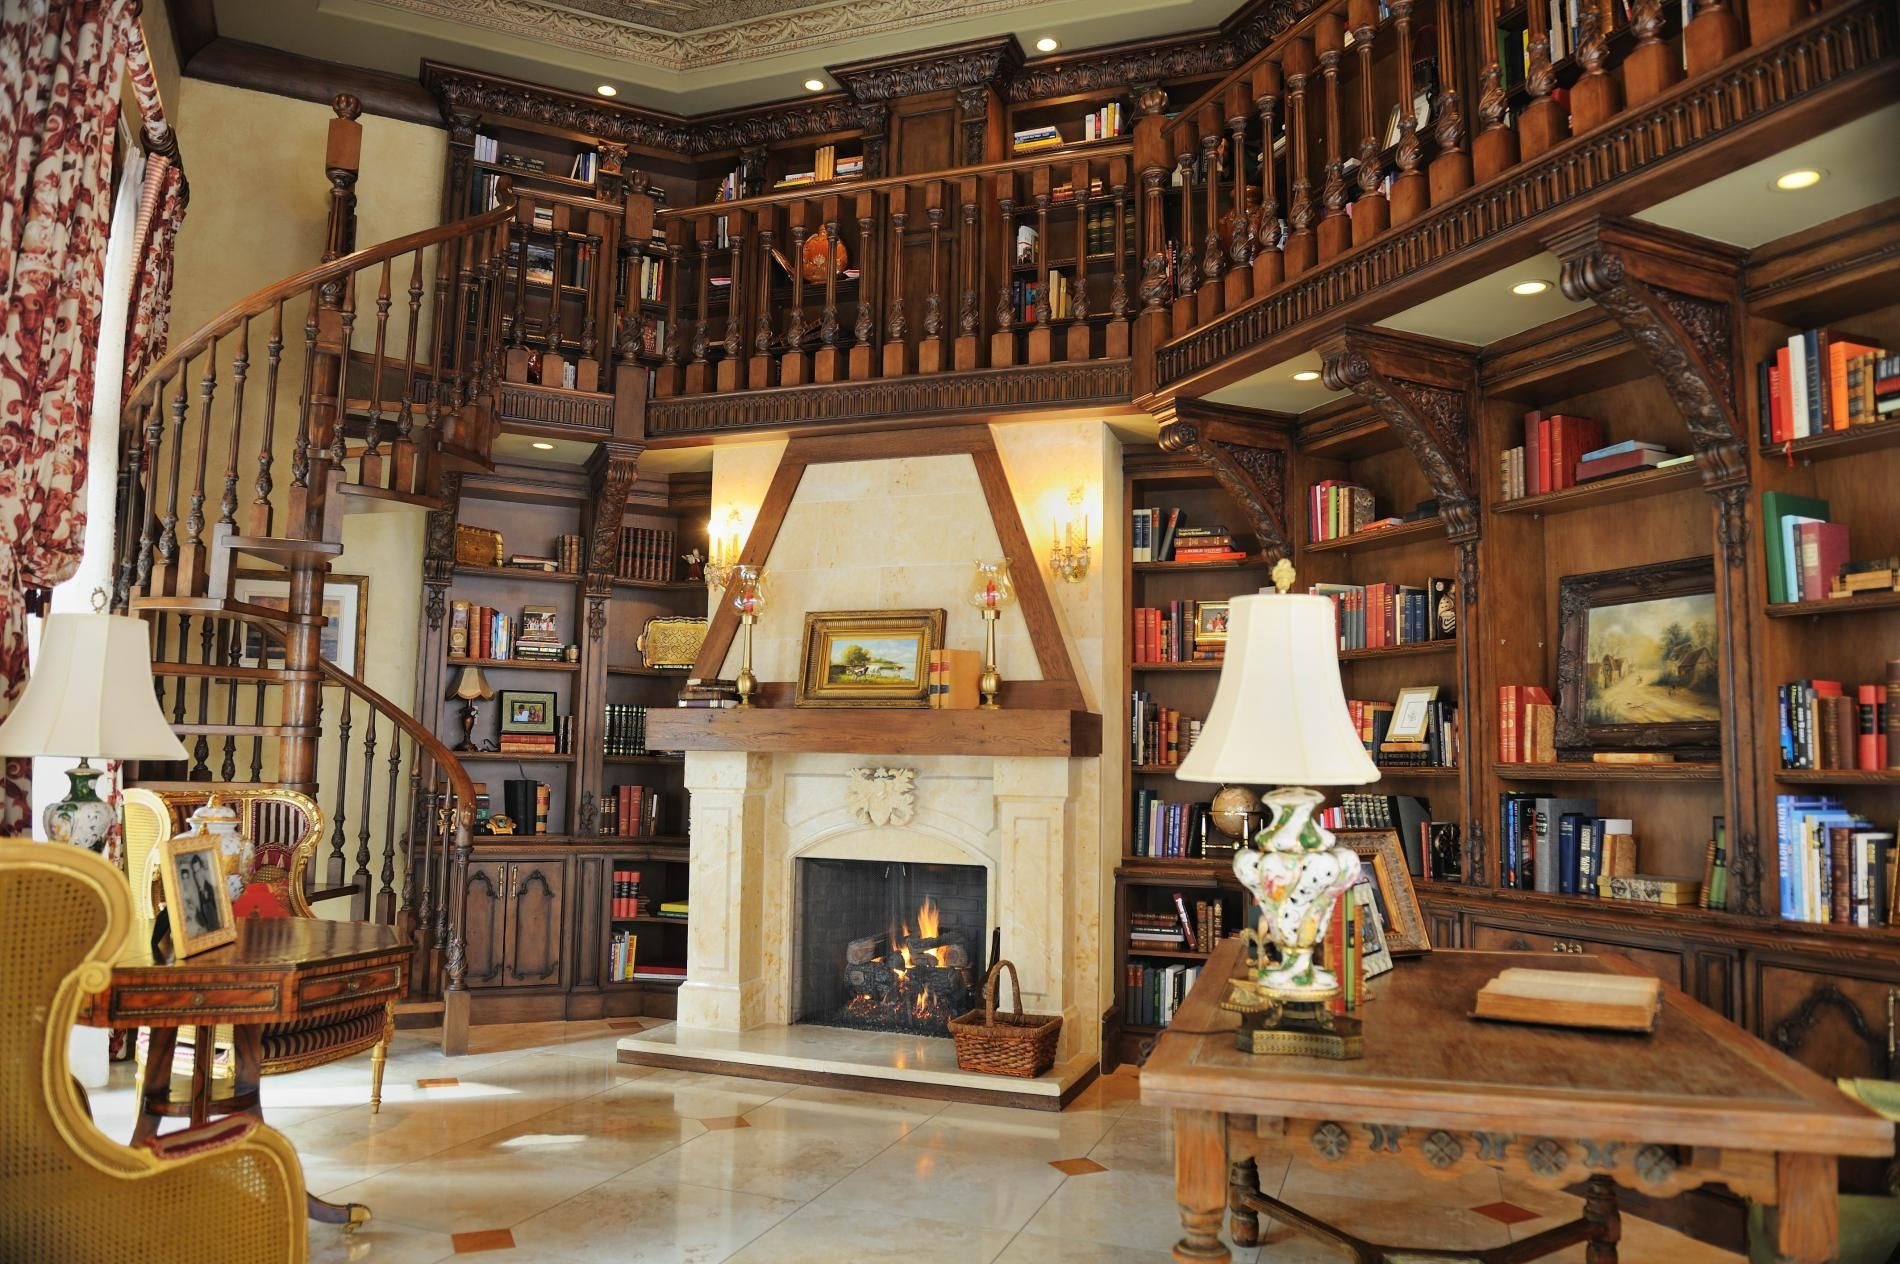 Pin by Kristen Gibbons on Dream Office/Library | Home library ...